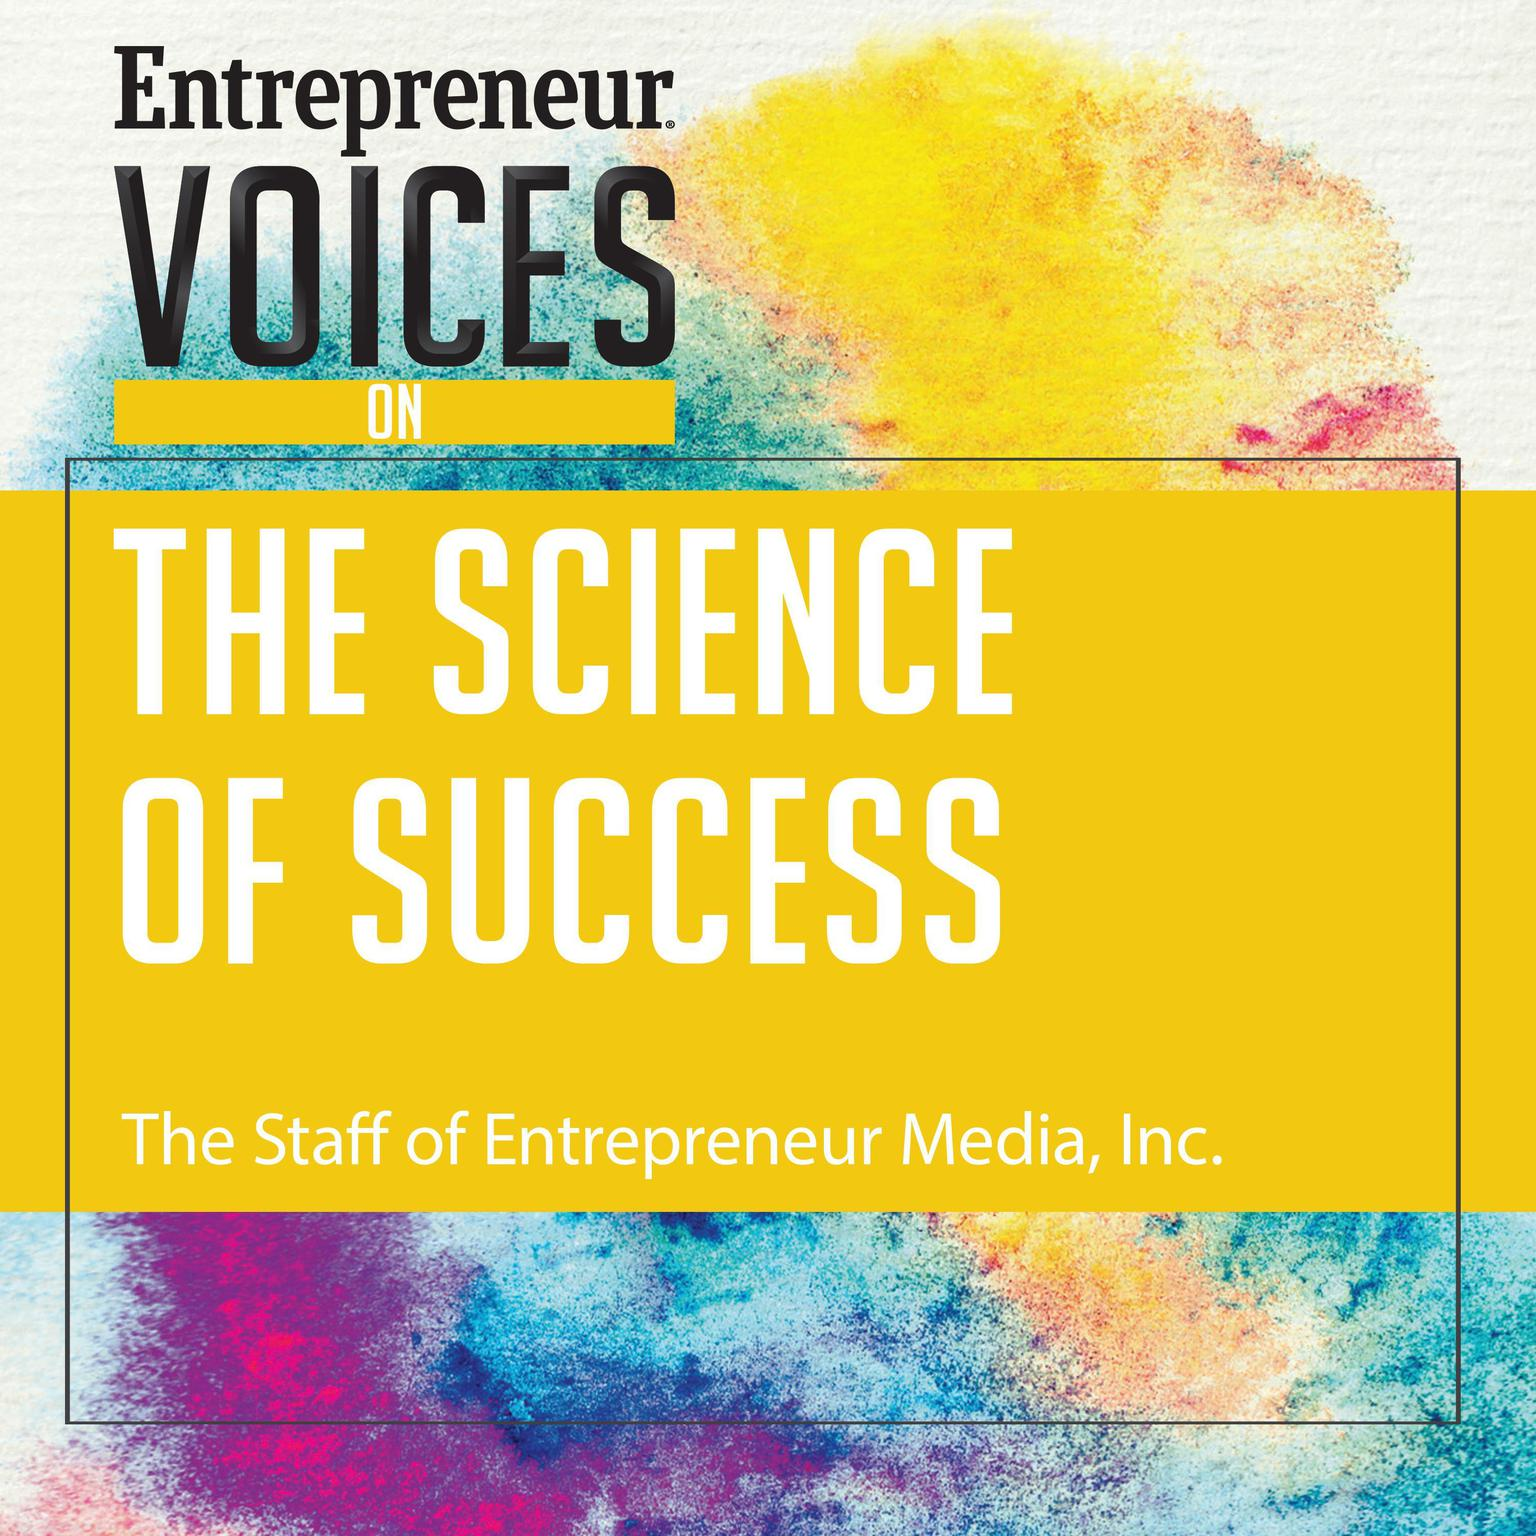 Printable Entrepreneur Voices on the Science of Success Audiobook Cover Art